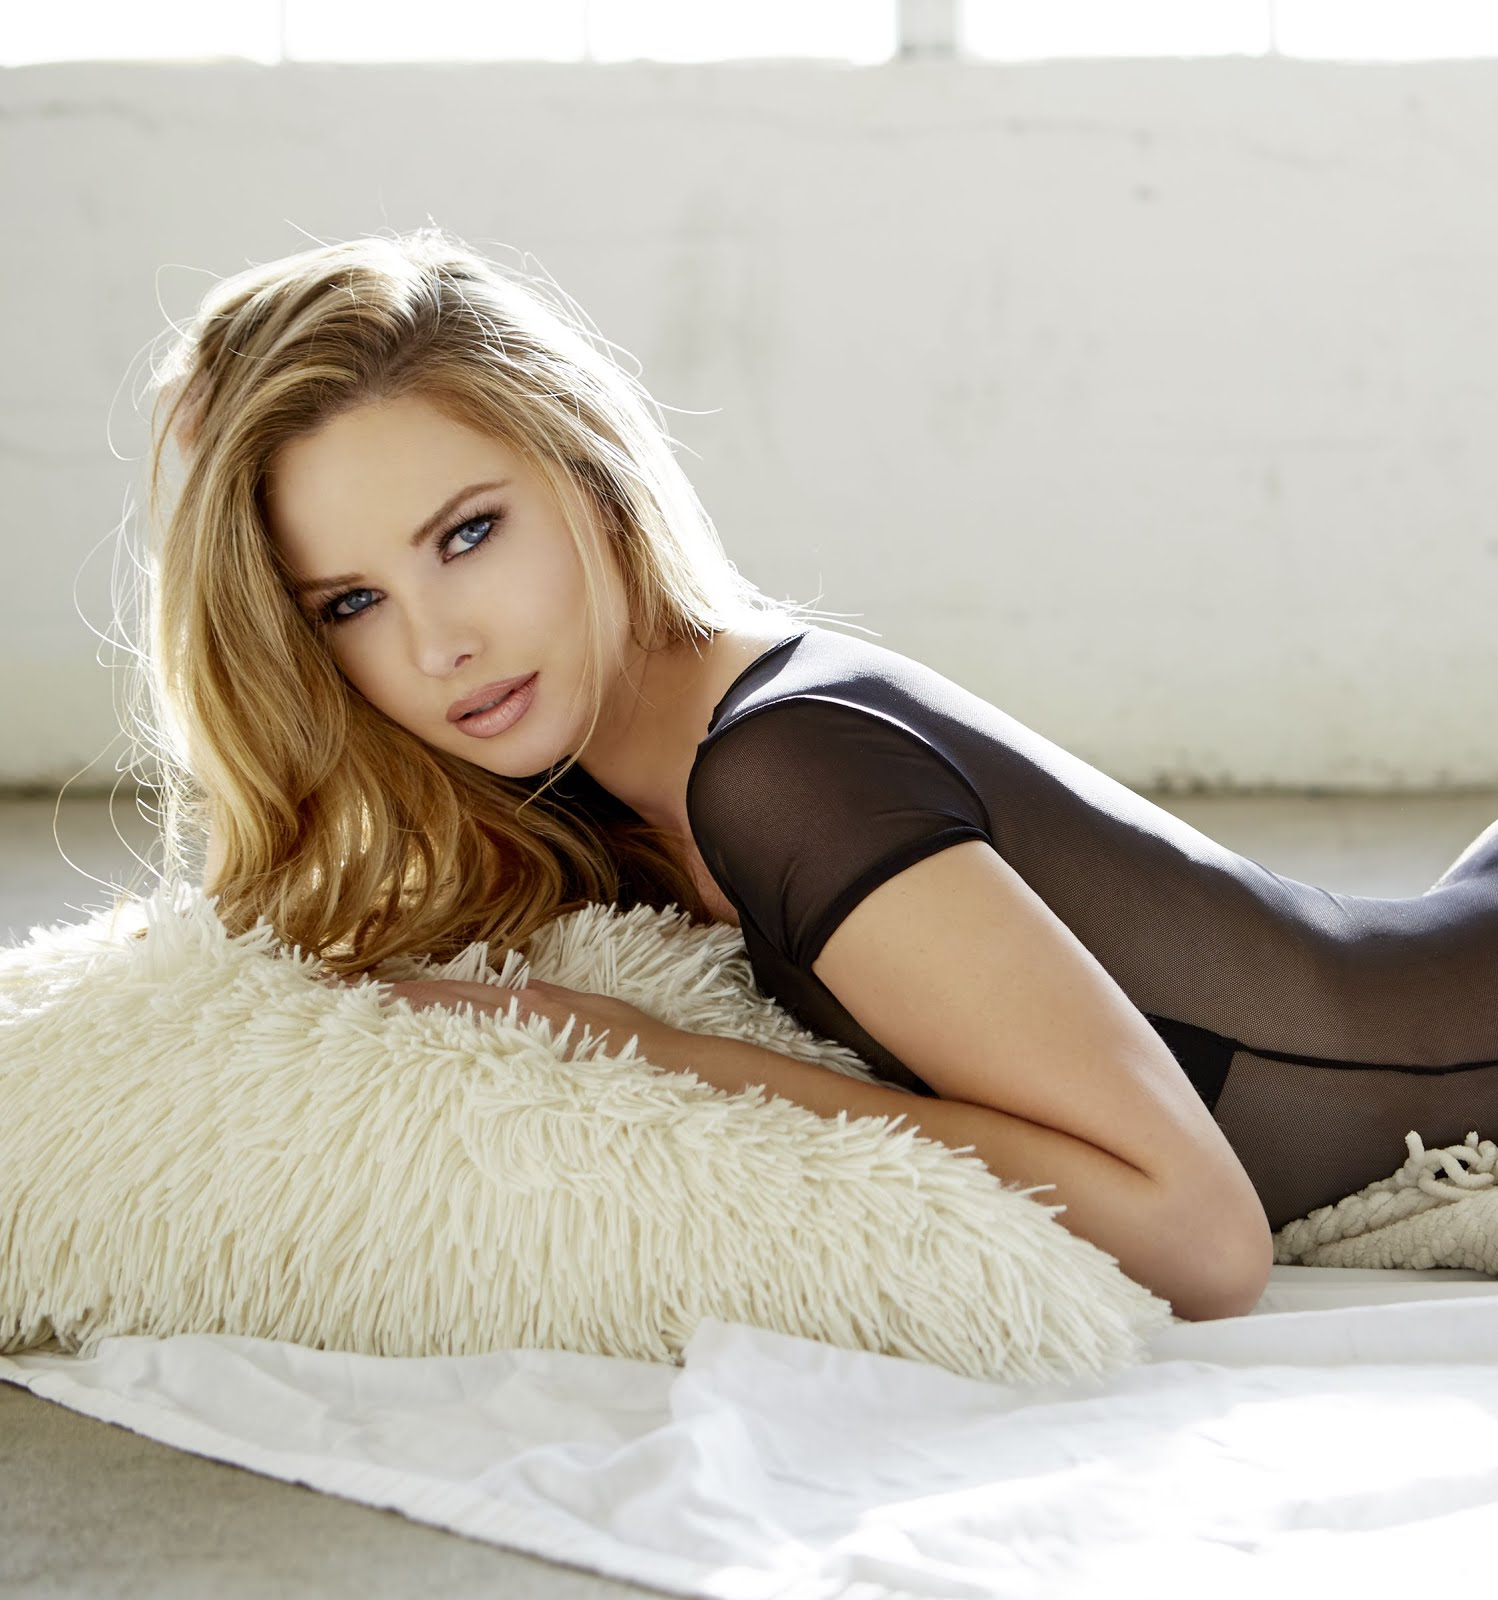 Top 10 Hottest Playboy Playmates of All Time | Sexiest